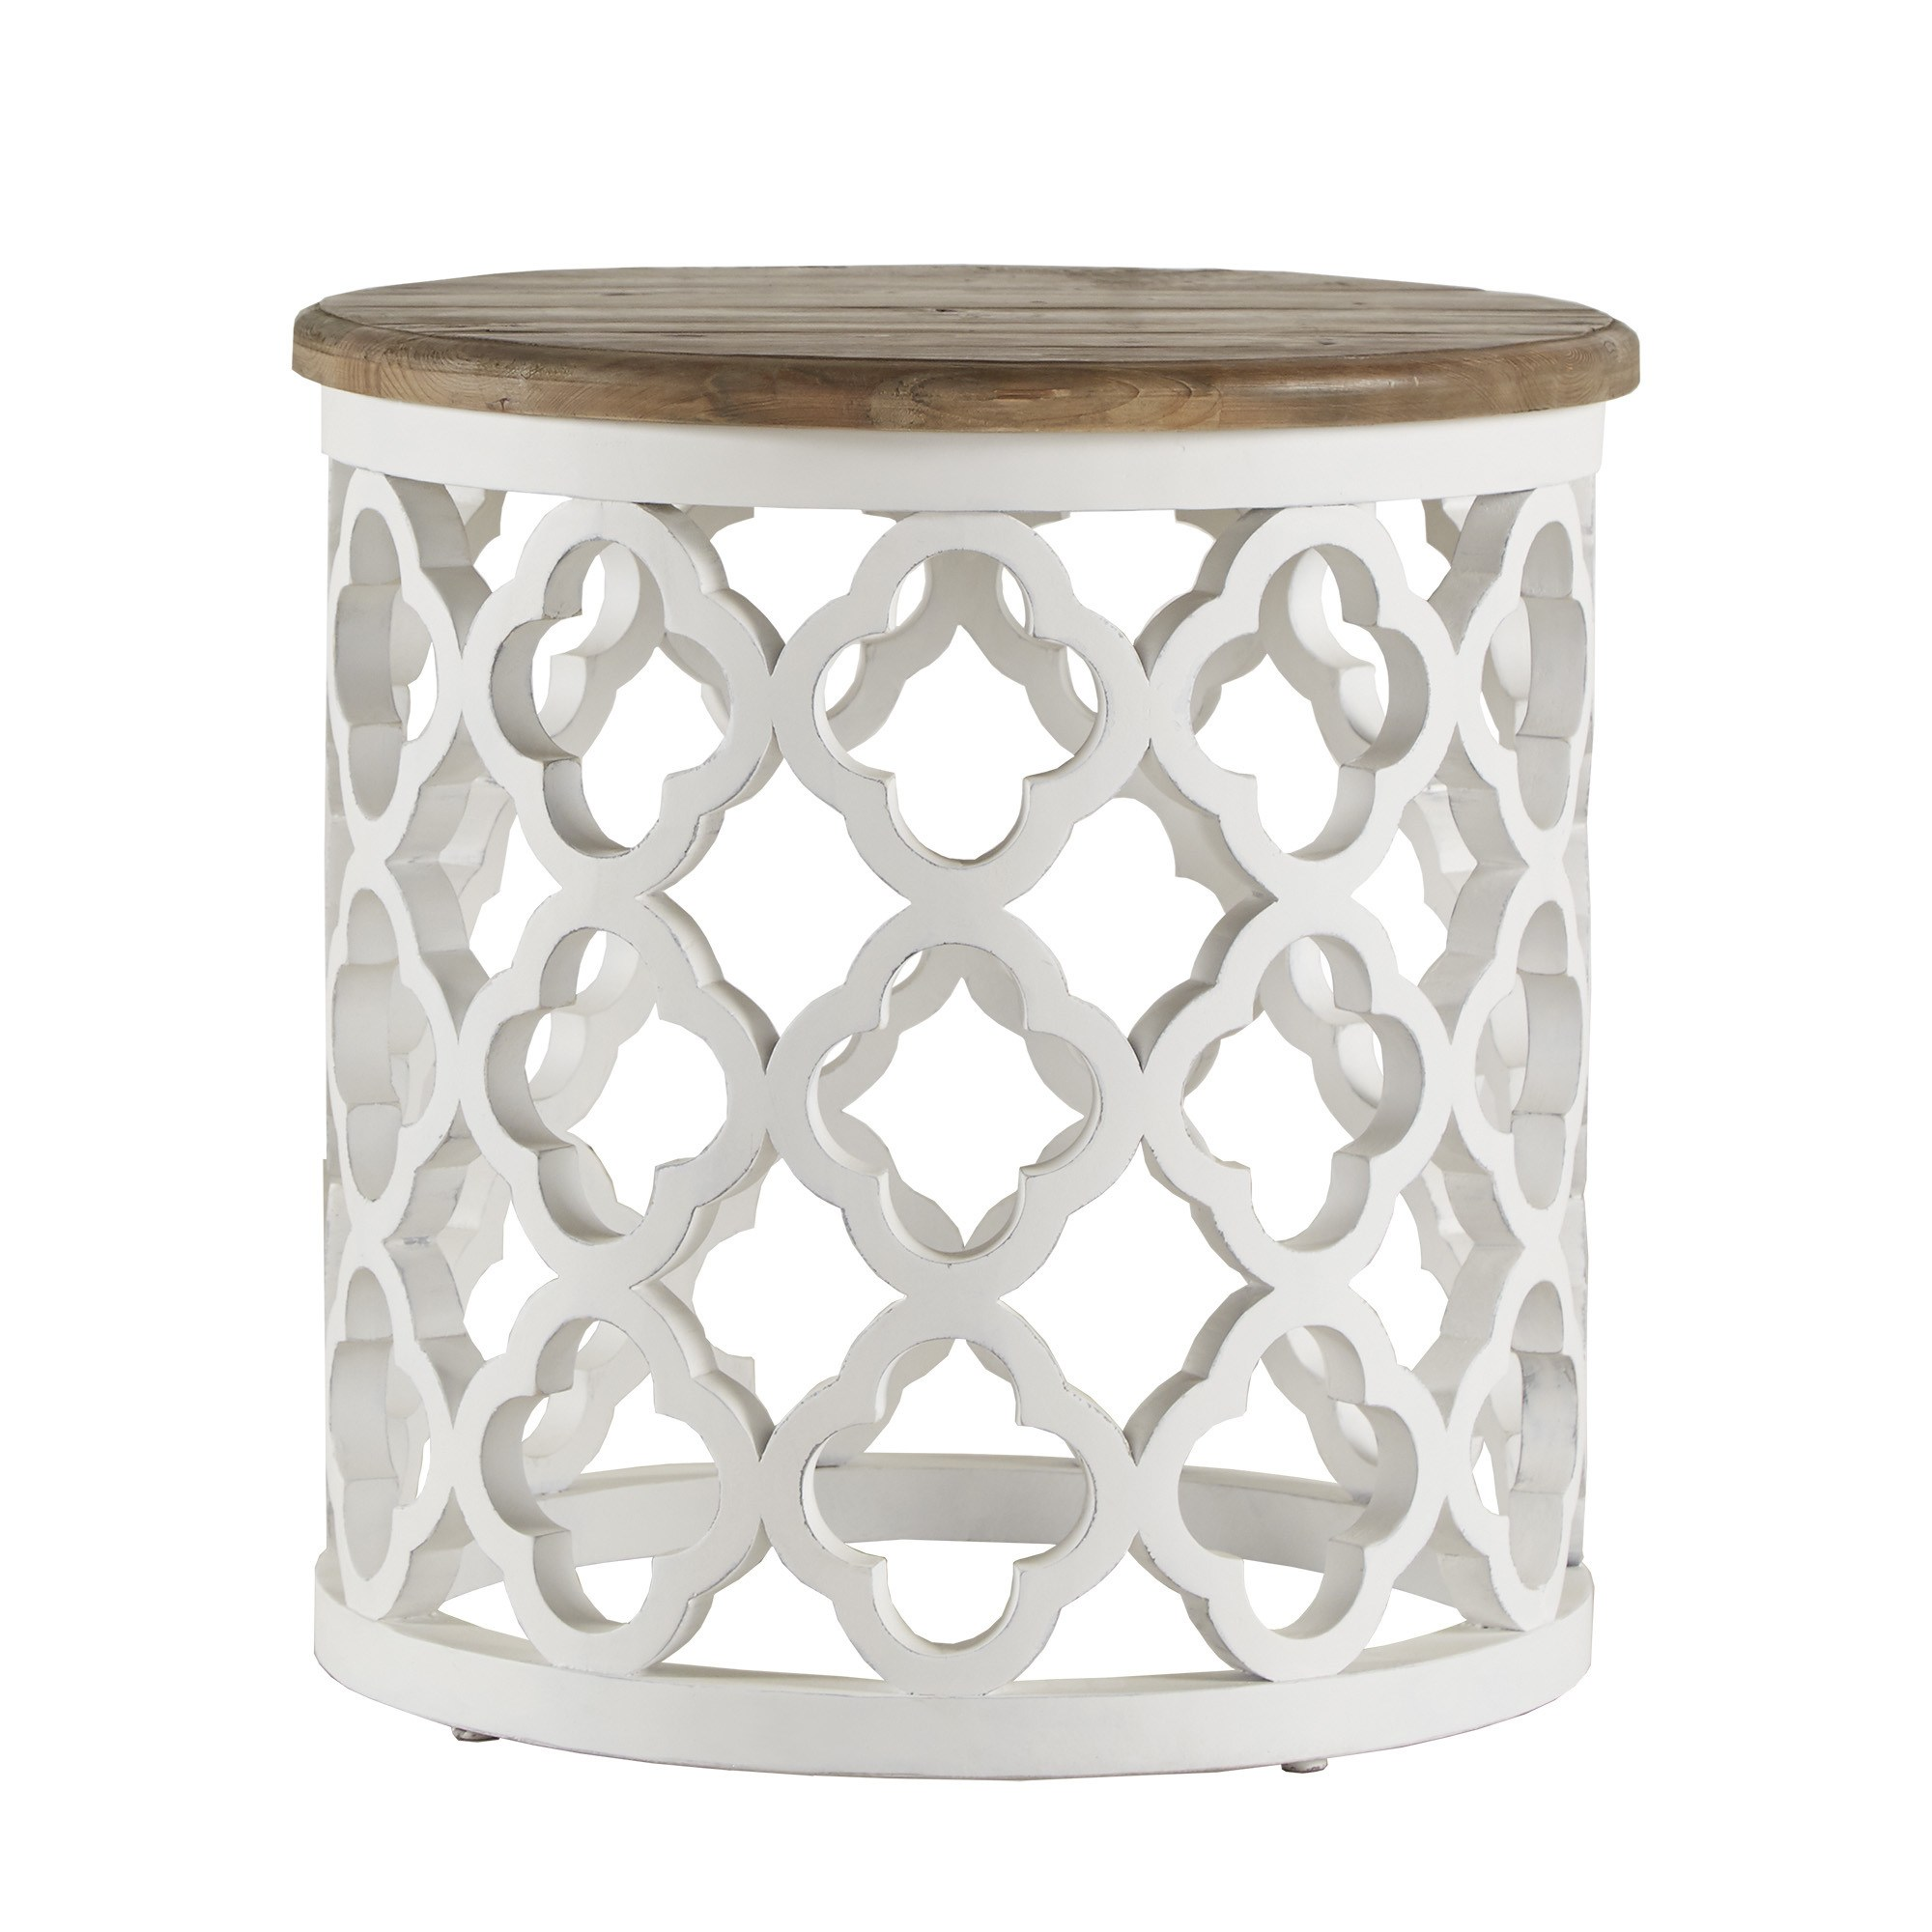 vince reclaimed wood moroccan trellis drum accent table inspire artisan cylinder free shipping today cherry corner marble top console bar bistro colorful sofa glass drawer pulls